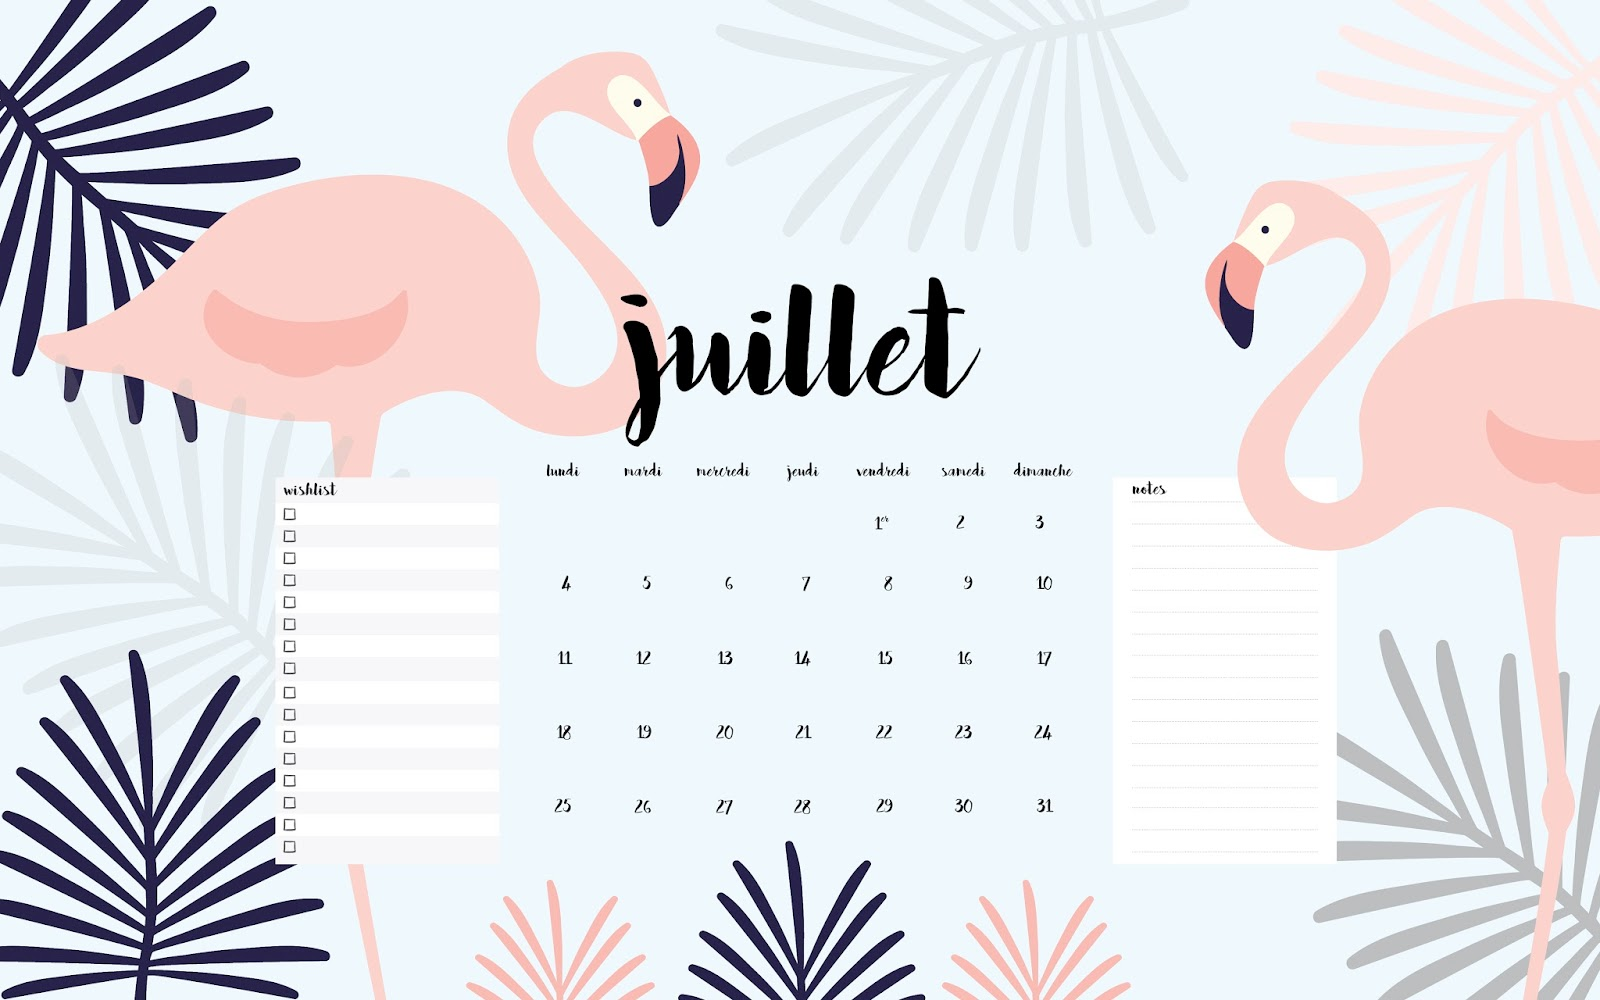 april garden hello juillet calendrier du mois de juillet t l charger. Black Bedroom Furniture Sets. Home Design Ideas